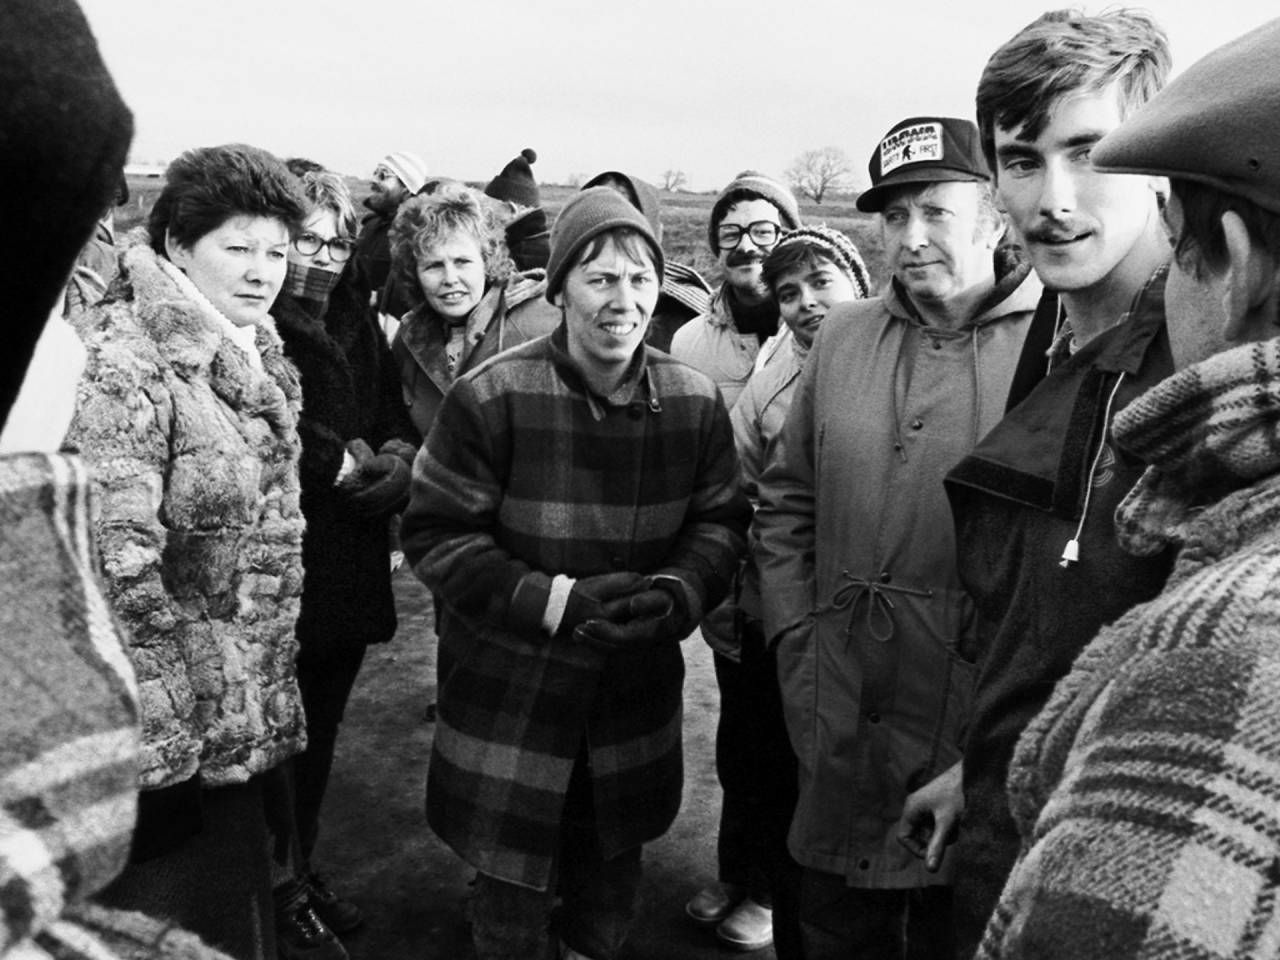 Women from the WAPC picketing with NUM President Arthur Scargill on New Year's Day at the Ferrybridge coal-fired power station West Yorkshire, 1985.